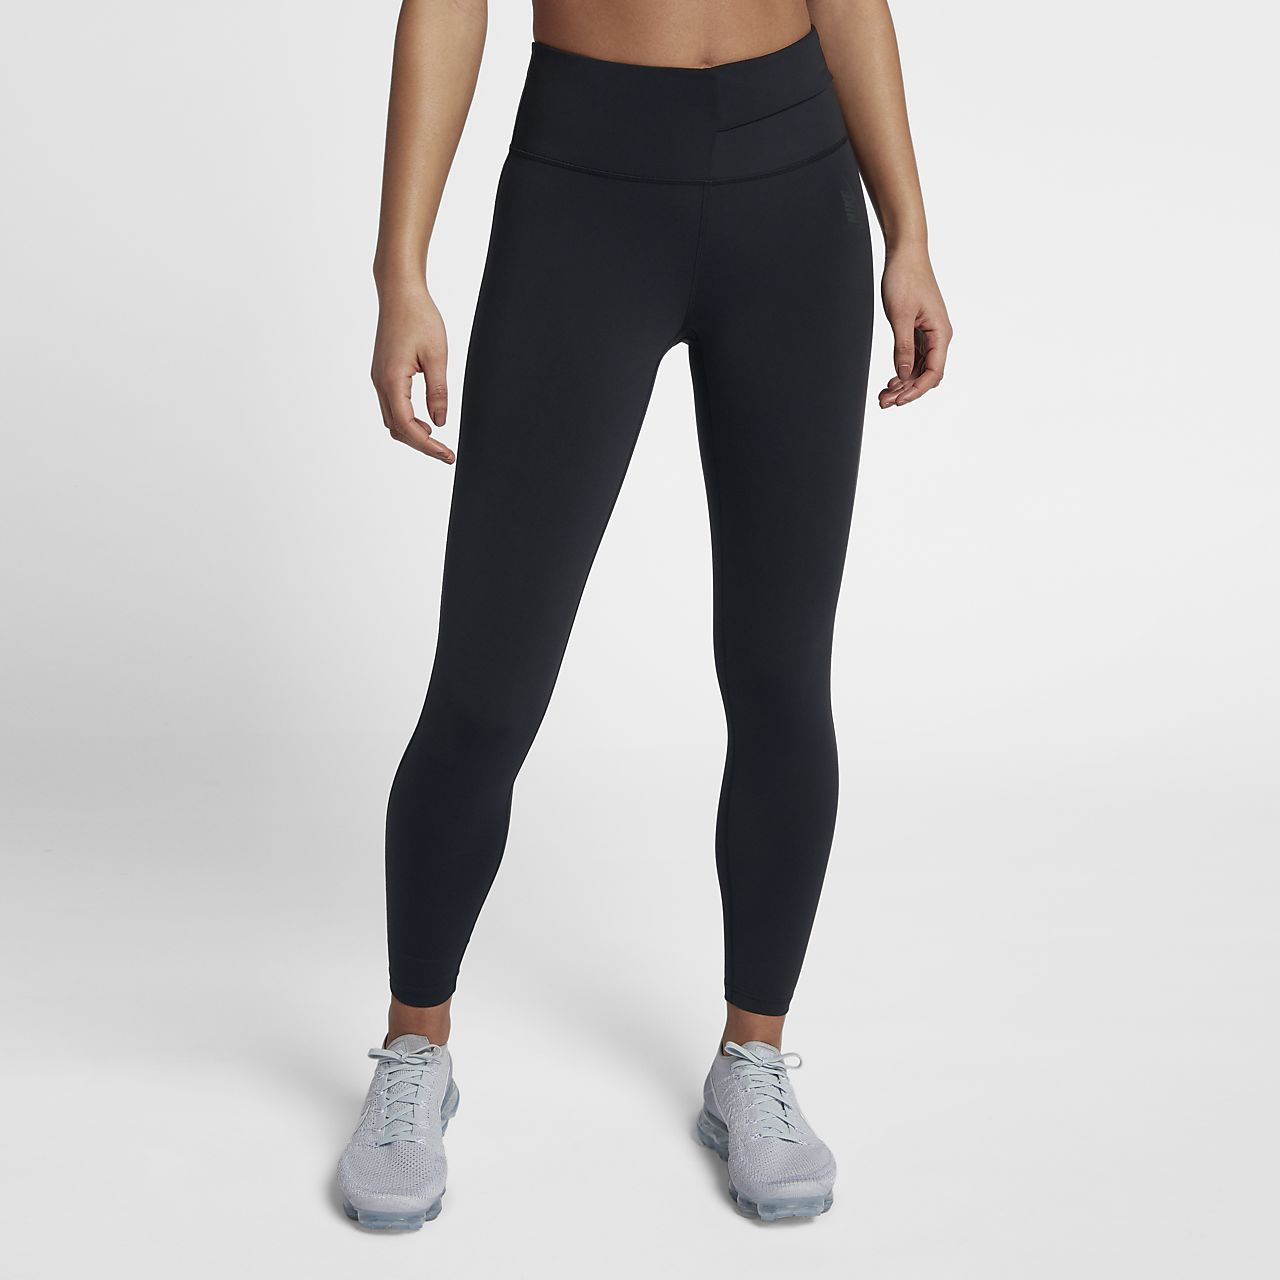 1a395244707b NikeLab Collection Women s Tights. Nike.com